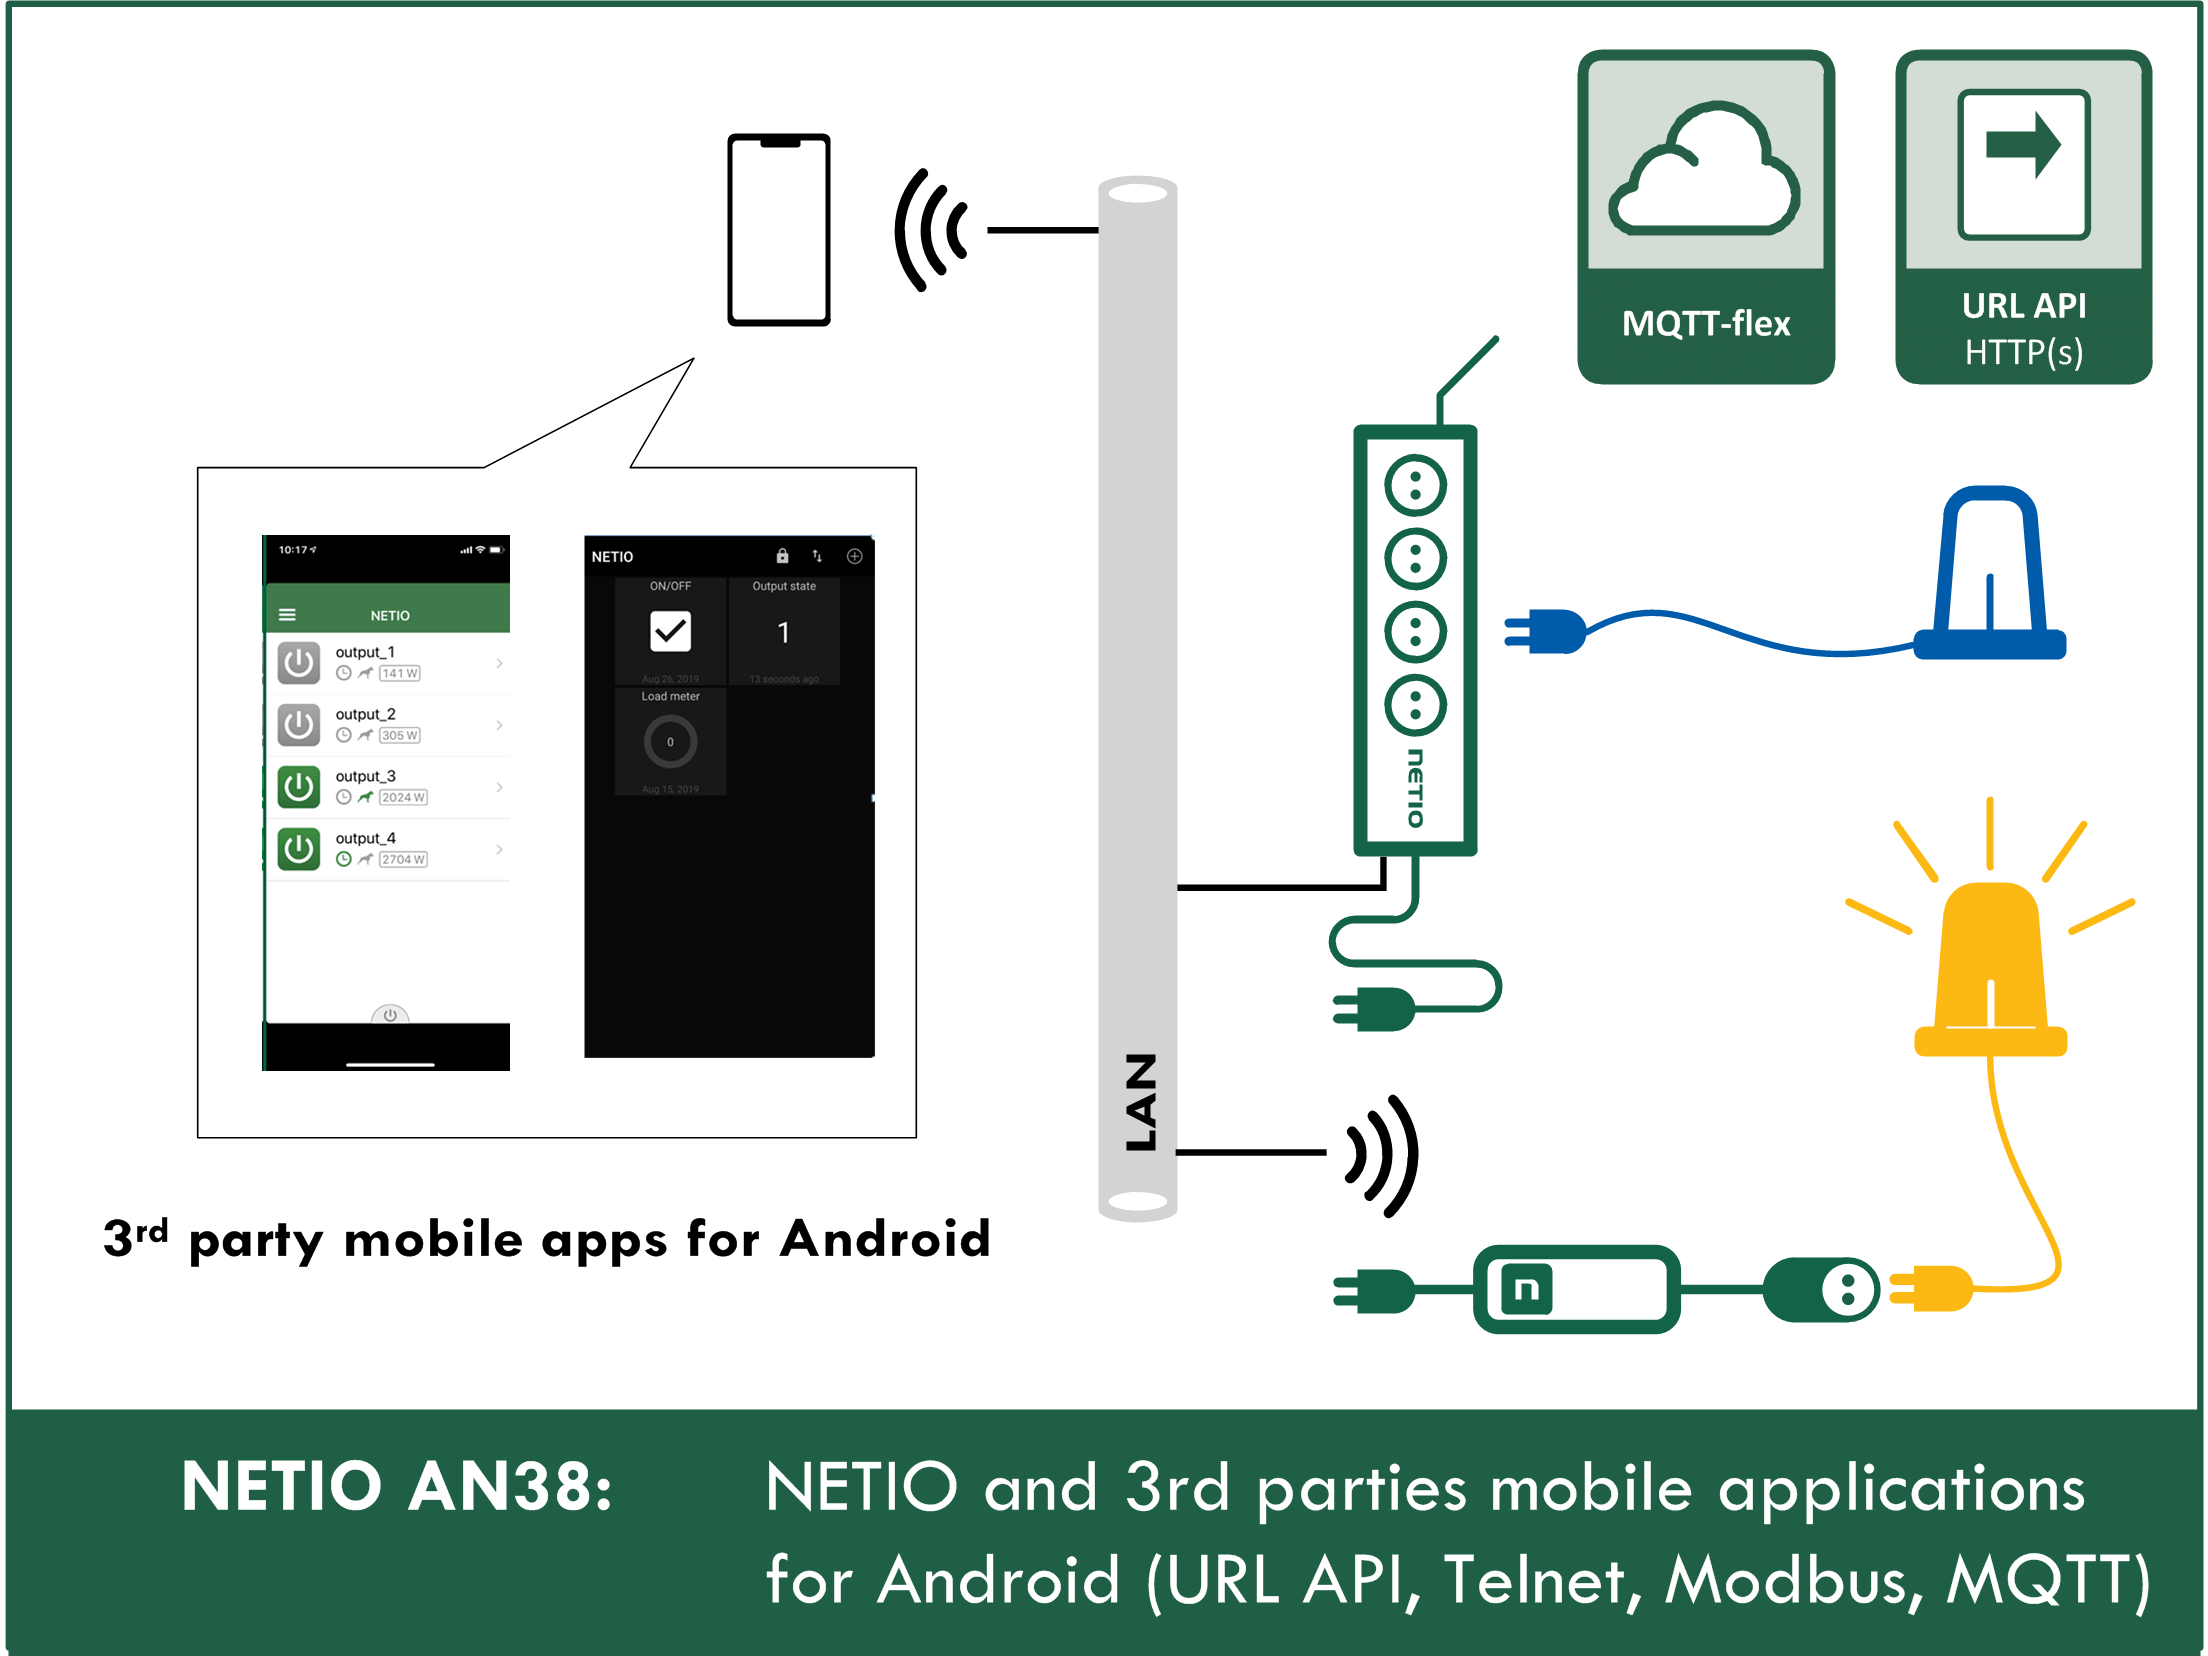 AN38 - NETIO and third-party mobile apps for Android (URL API, Telnet, Modbus)